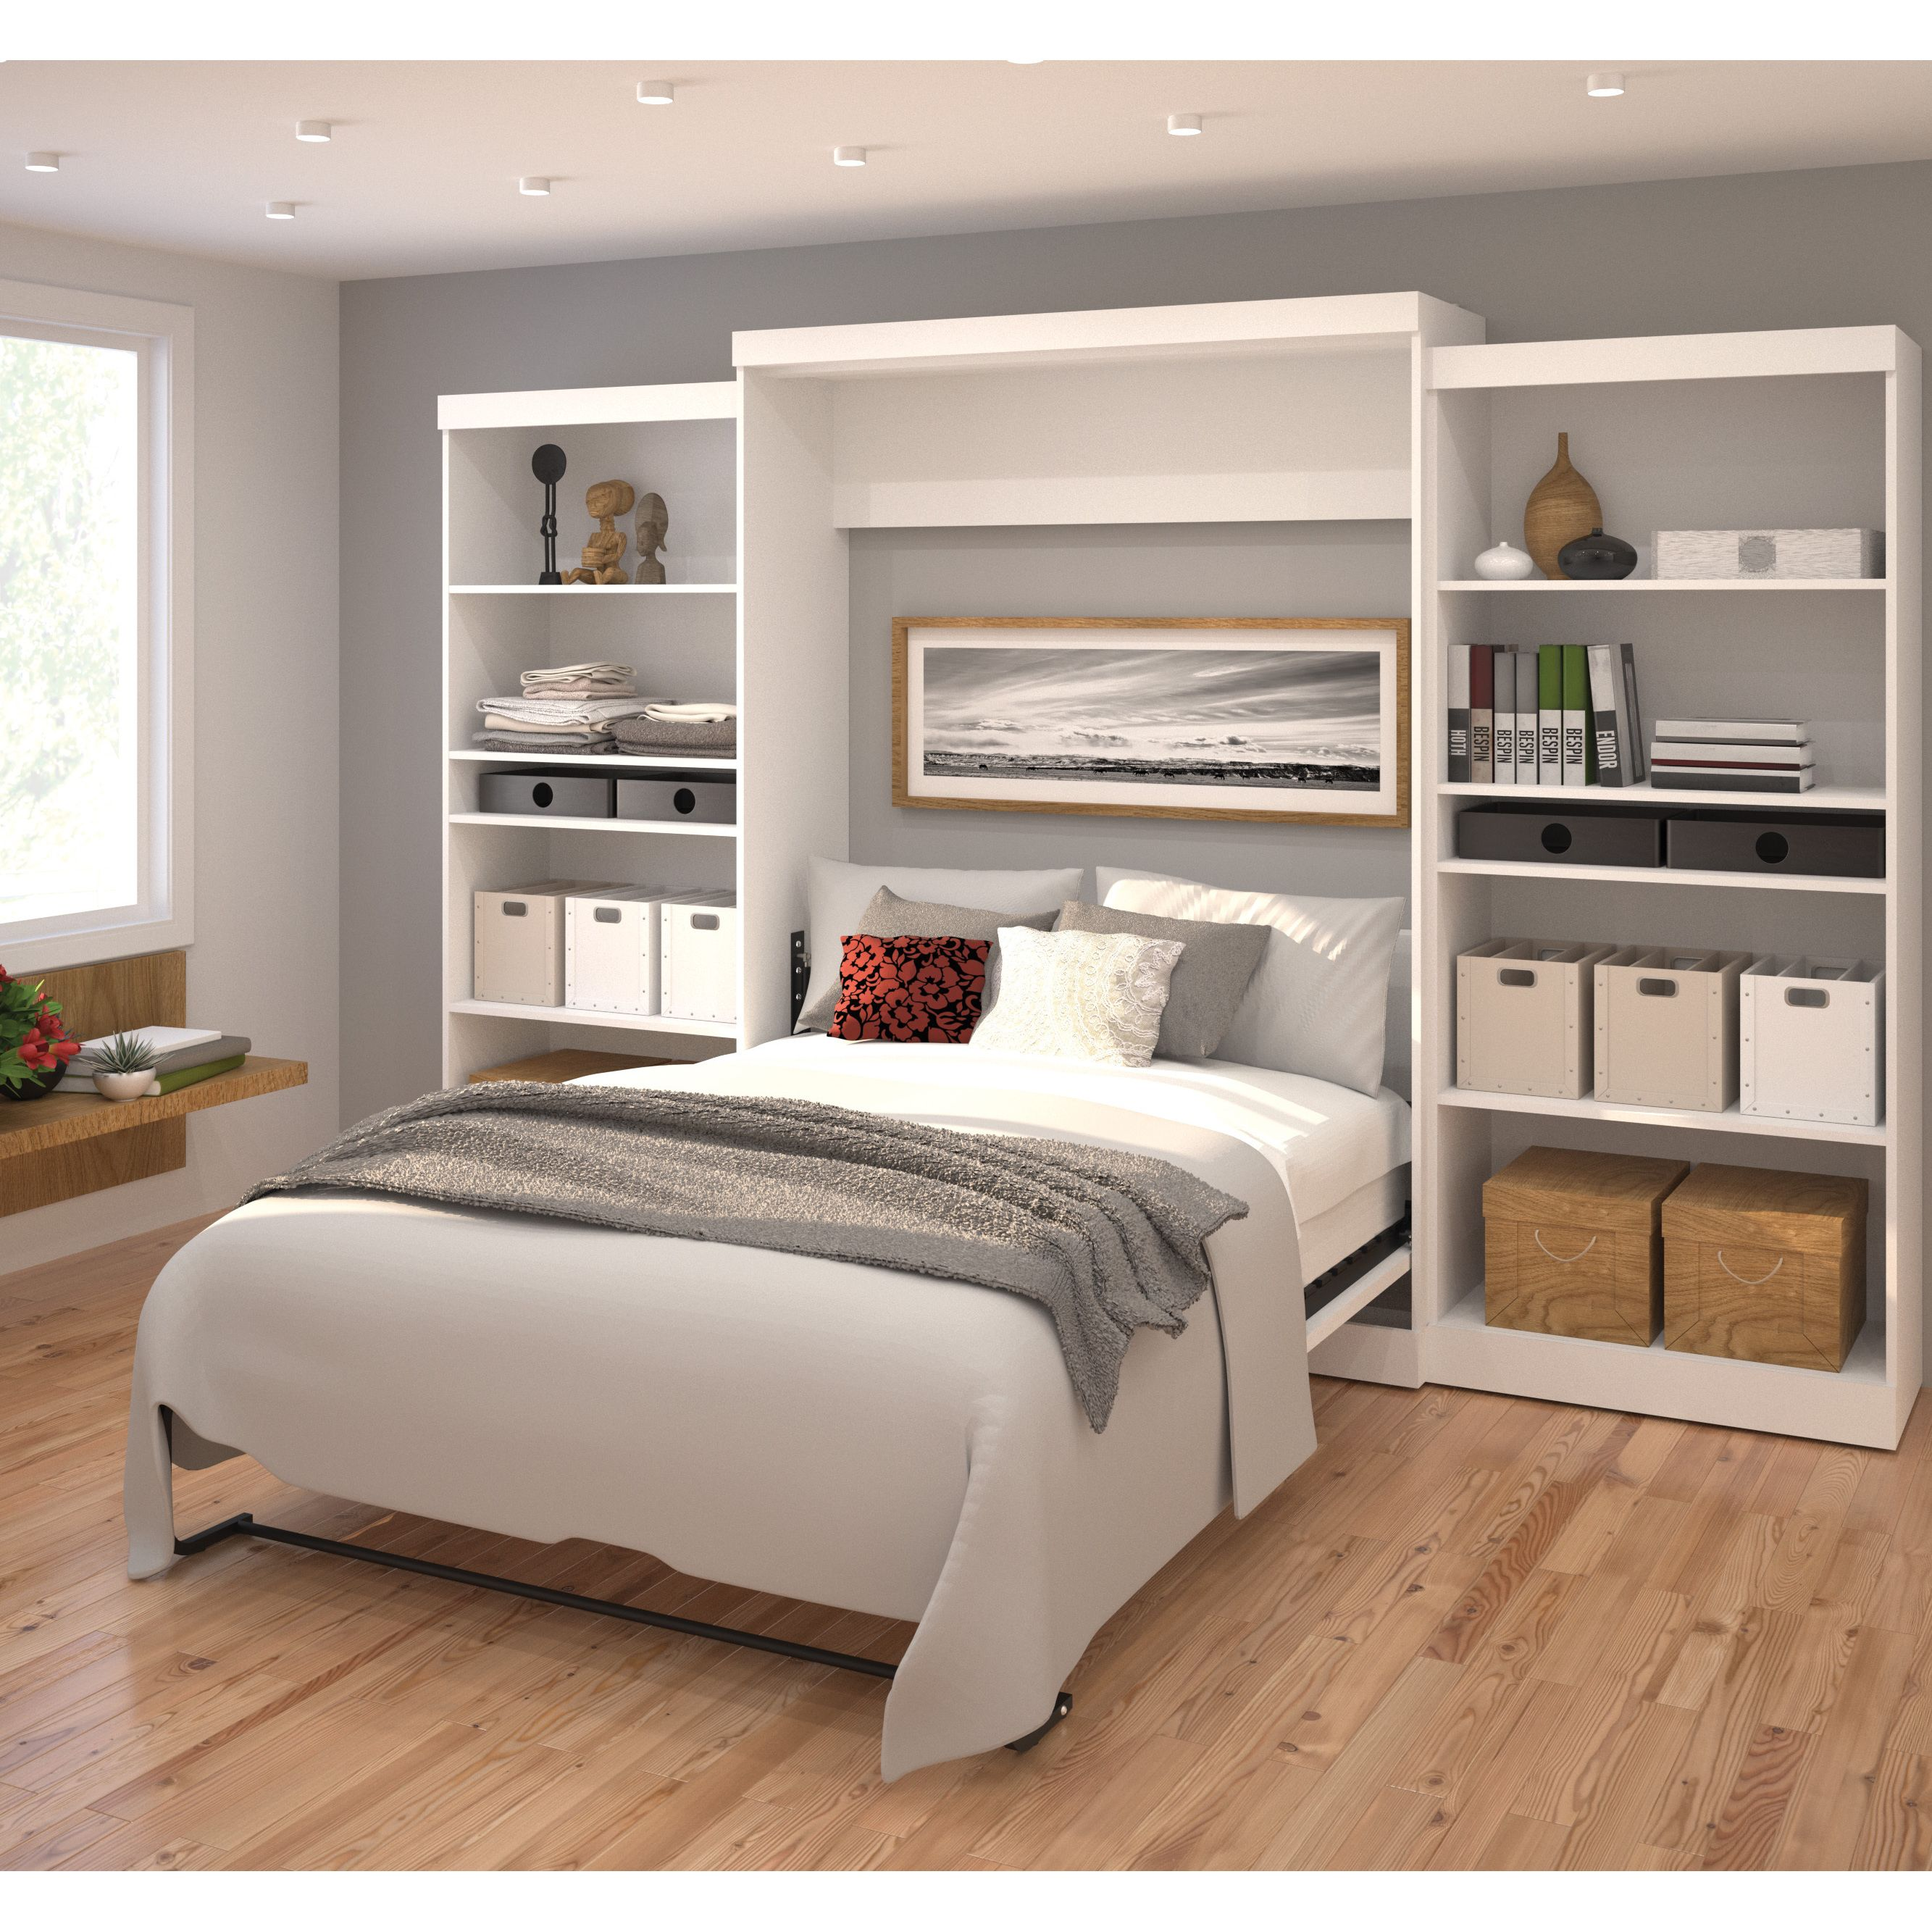 """Pur by Bestar 136"""" Queen Wall bed kit by Bestar Wall"""